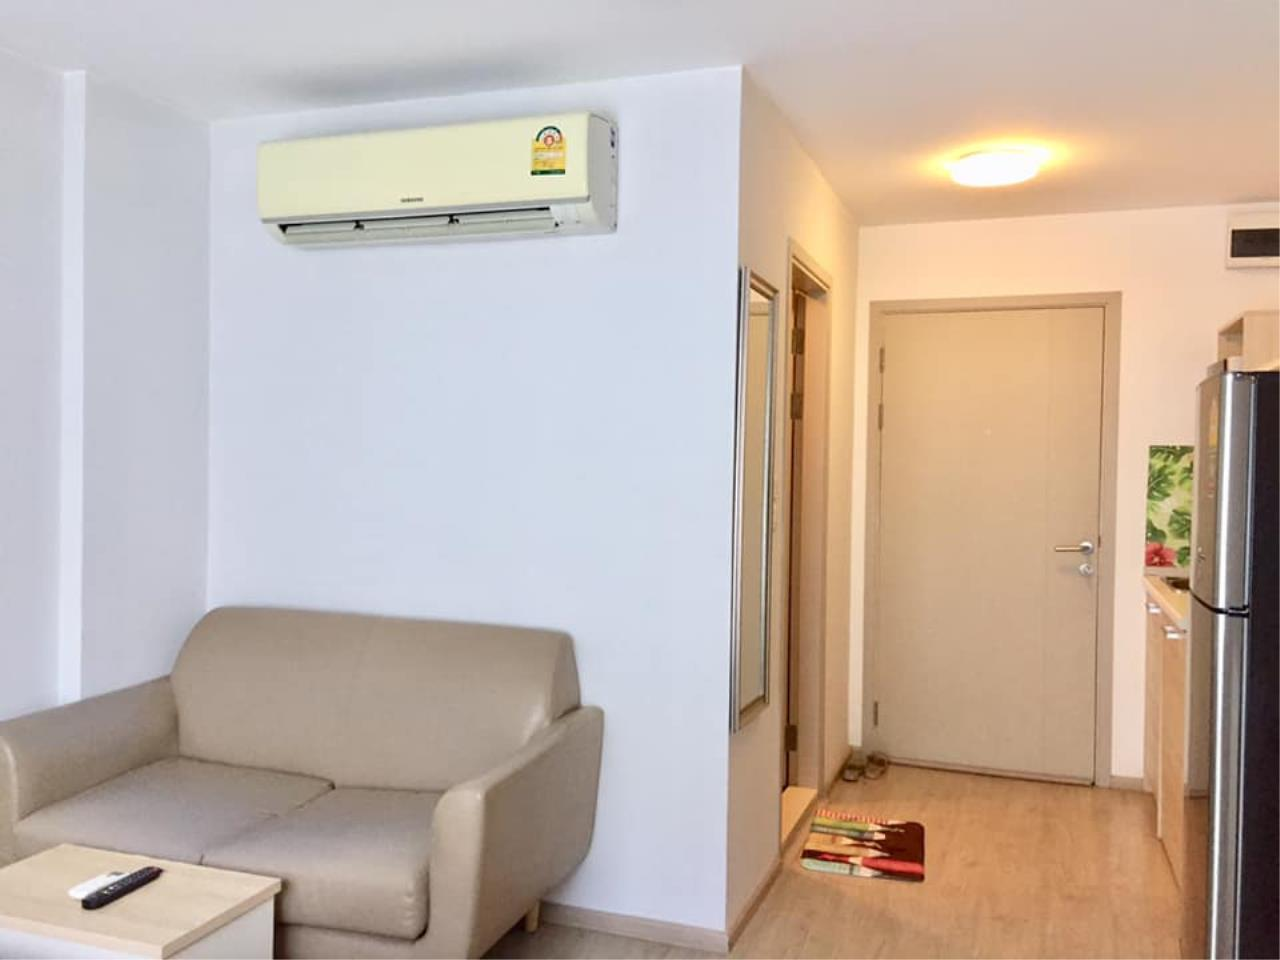 Agent Thawanrat Agency's Condo for rental ELIO DEL RAY Near BTS.Udom Suk 1 bedroom,1 bathroom. size 24 sqm.Floor 3 rd. fully furnished Ready to move in 4